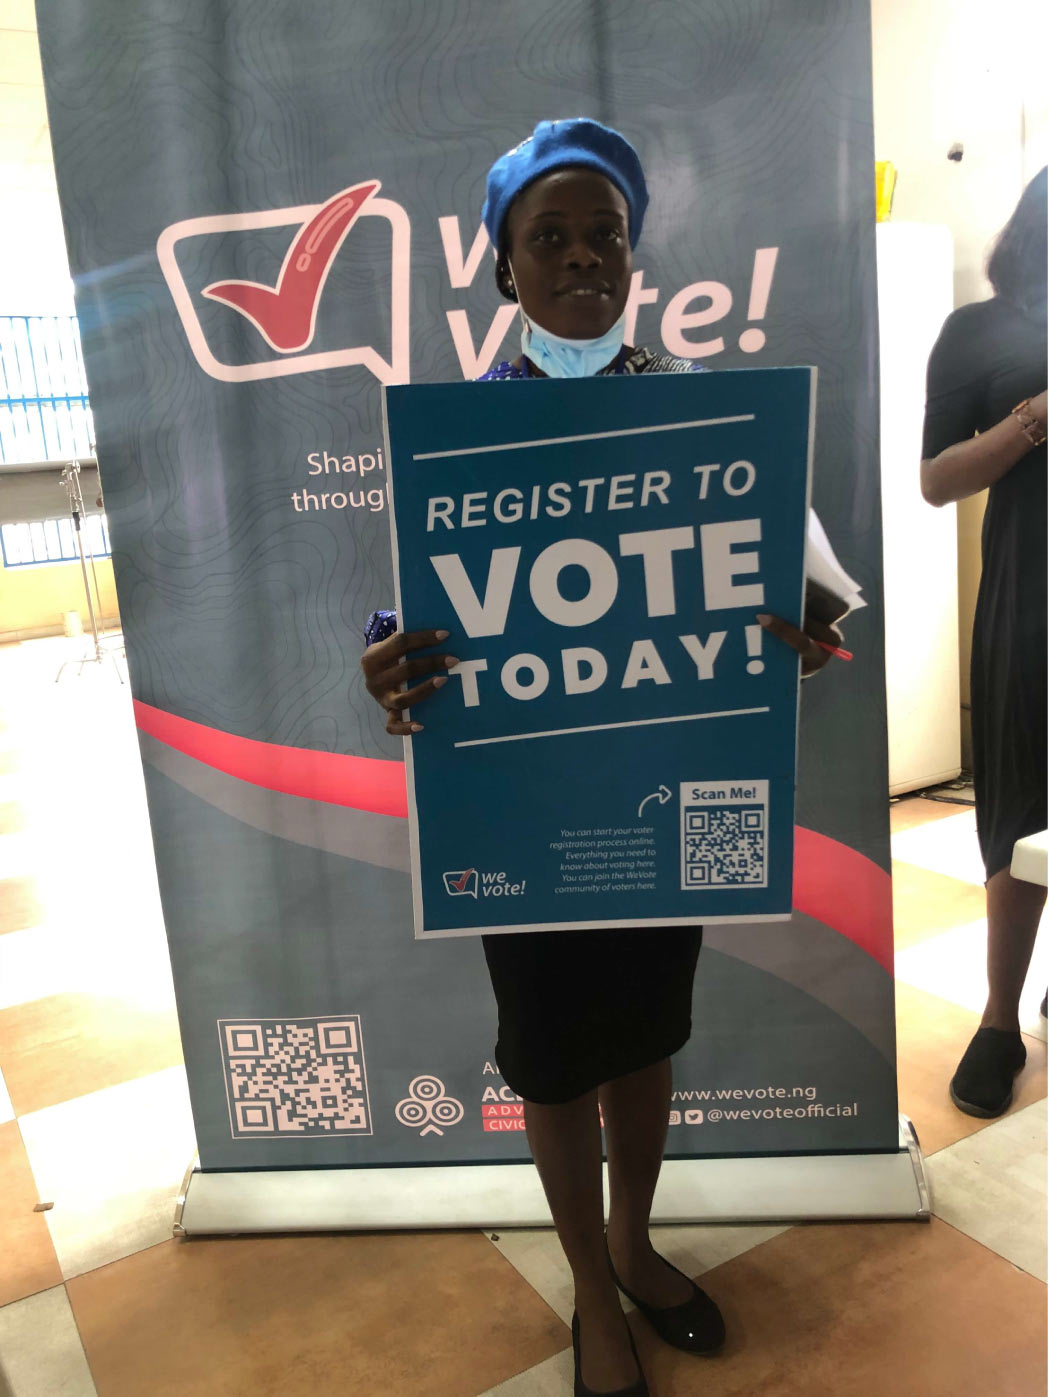 WeVote targets youth and first time voters at RCCG with voter education, awareness and registration